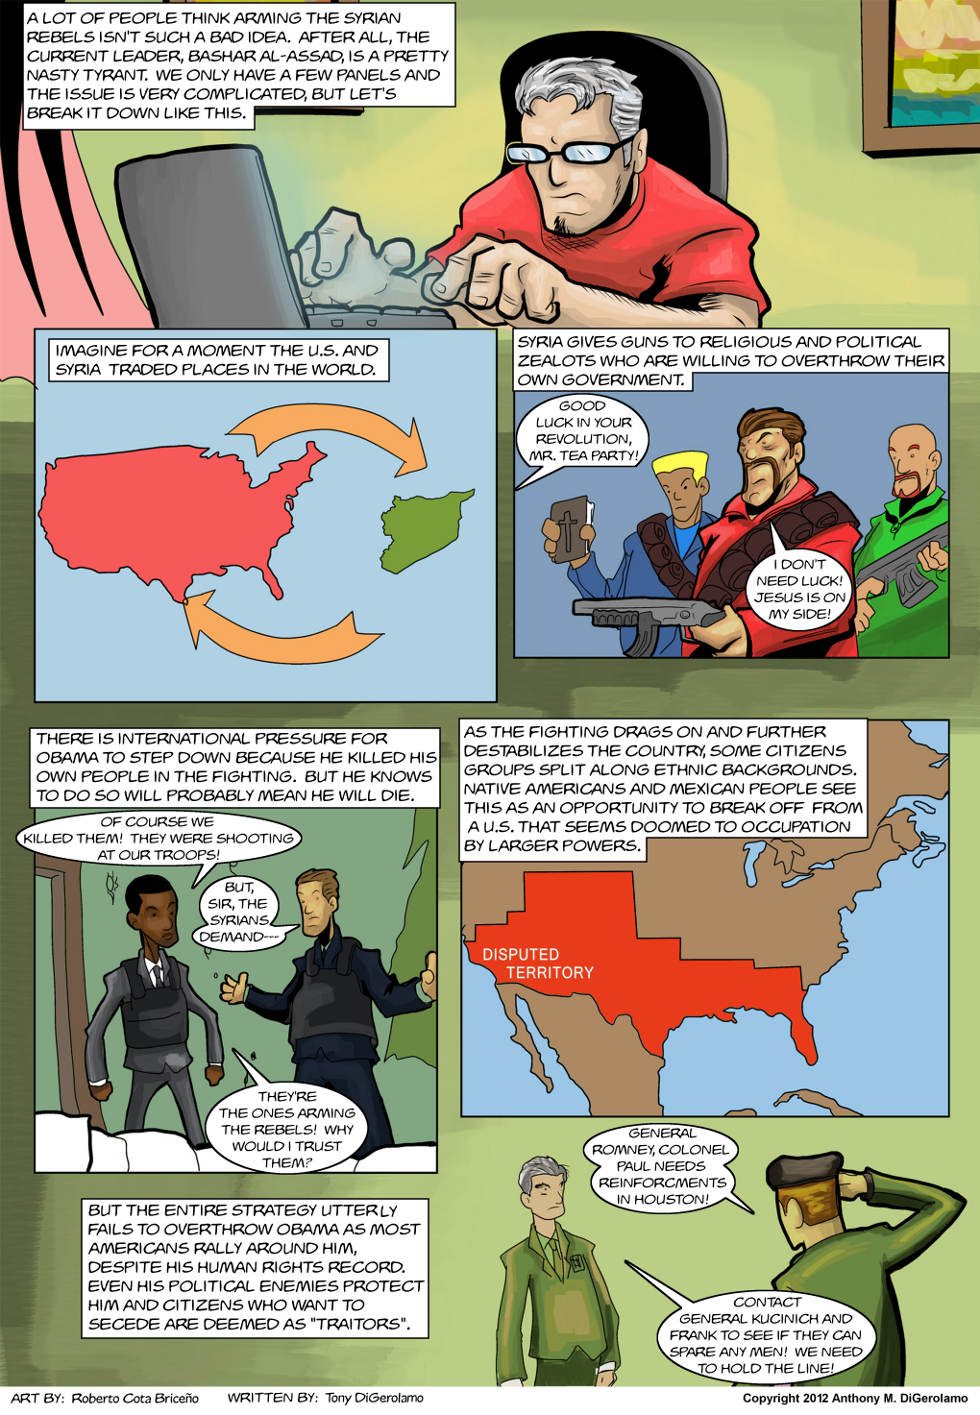 The Antiwar Comic:  What's the Deal with Syria?